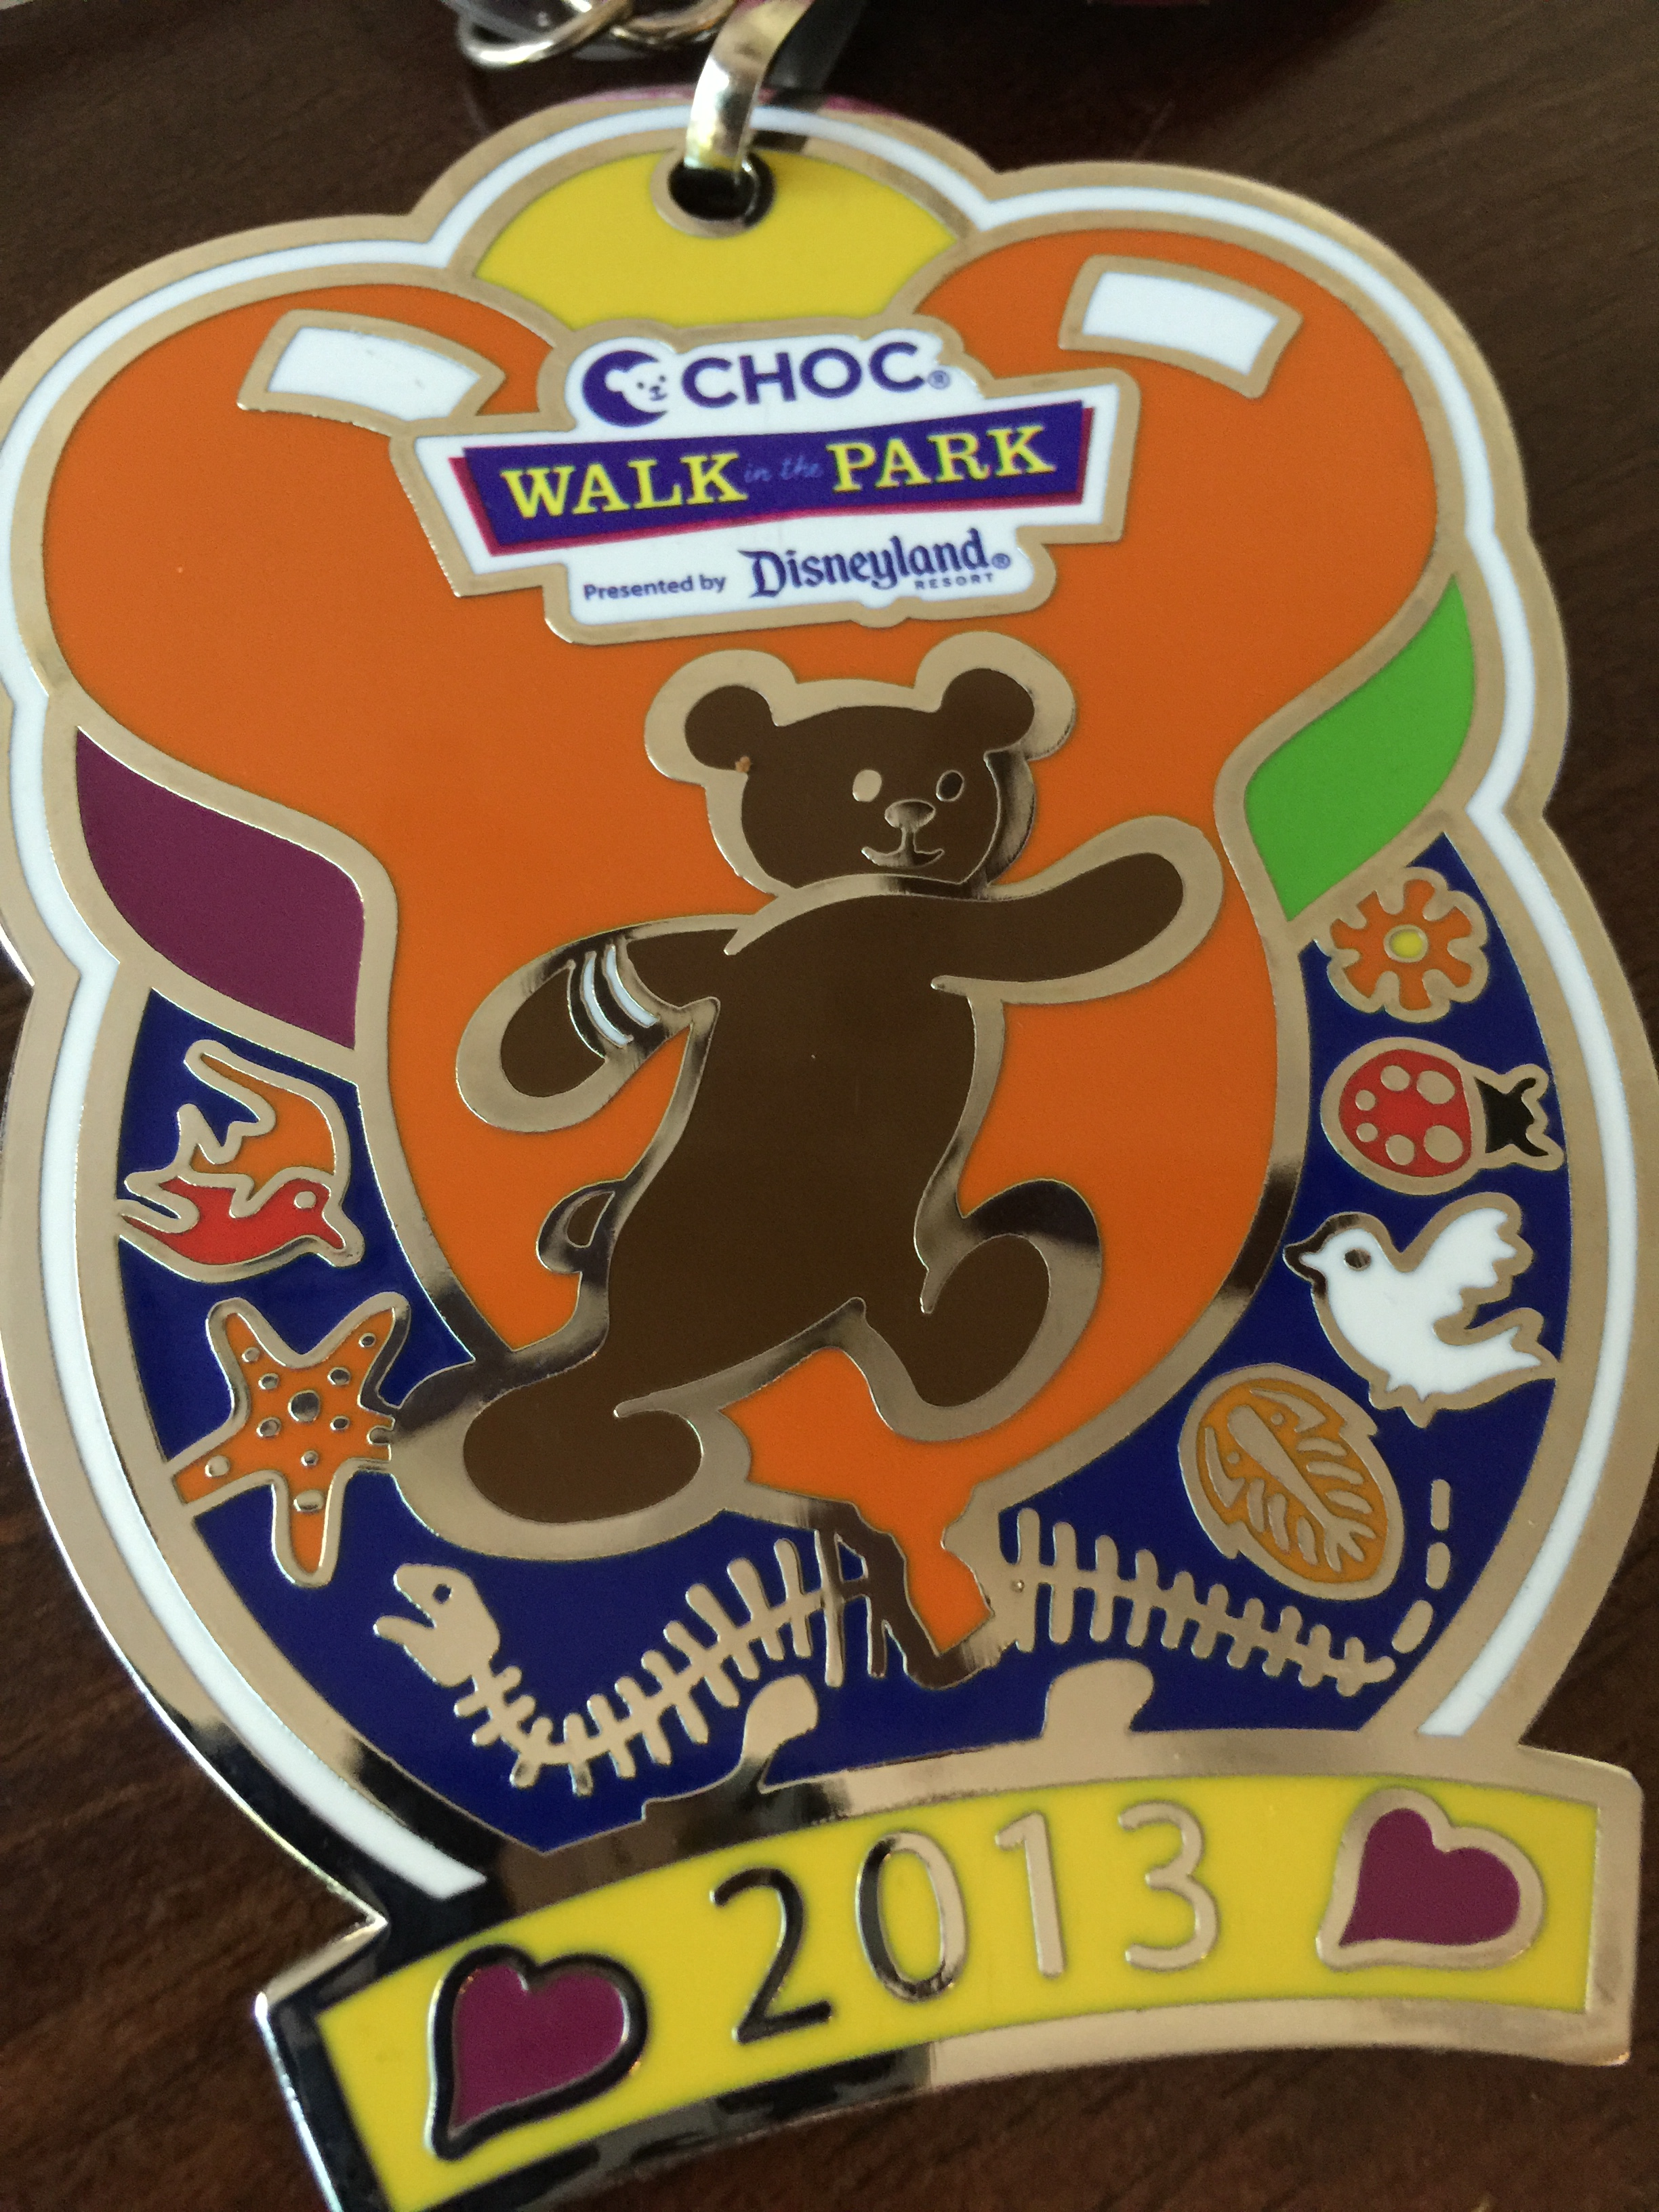 5 Benefits of Participating In the CHOC Walk In The Park at Disneyland